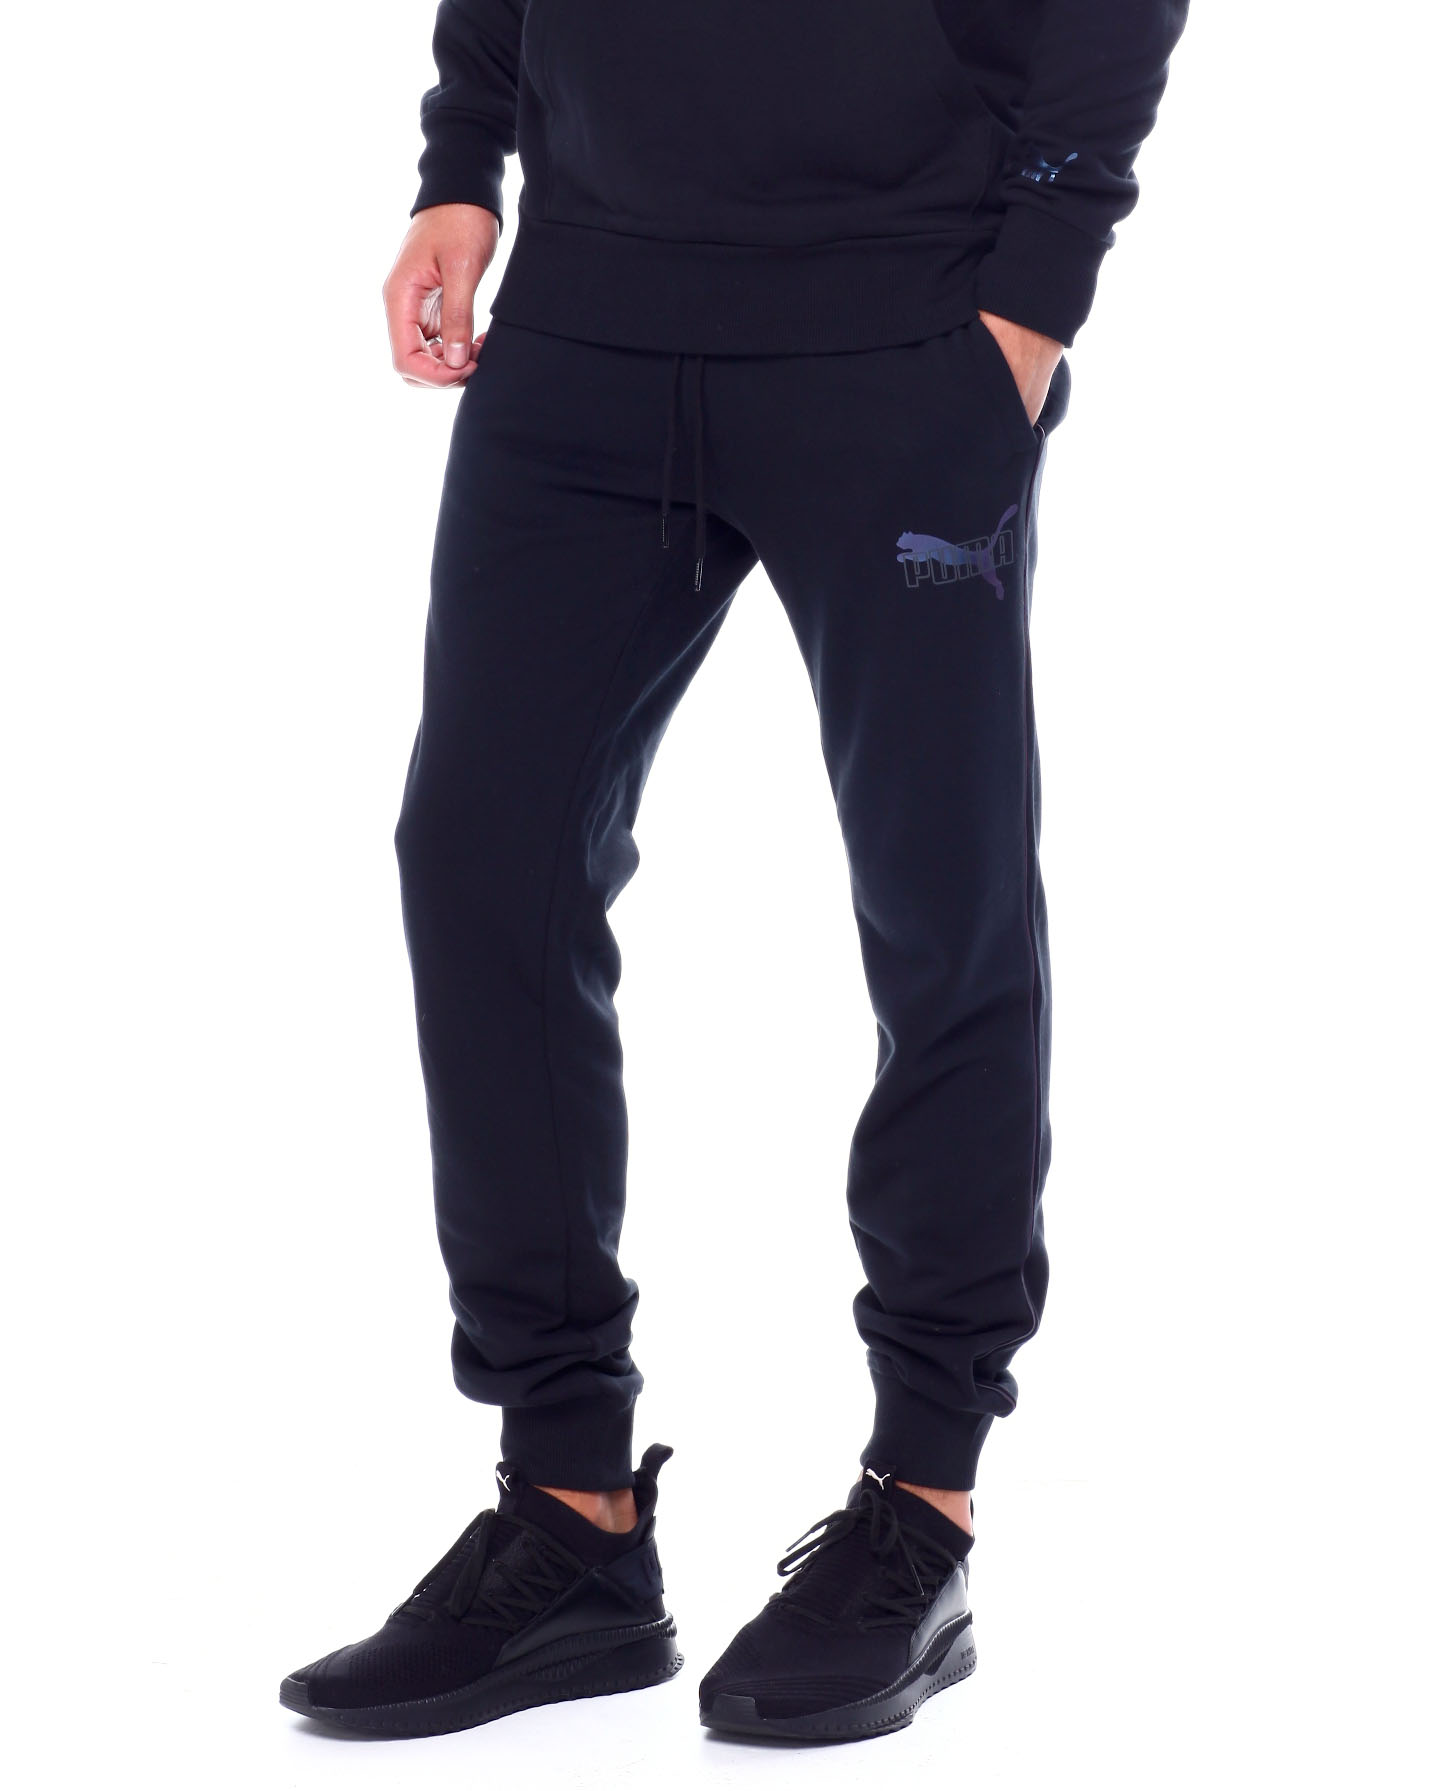 Buy IRIDESCENT SWEATPANT Men's Jeans & Pants from Puma. Find